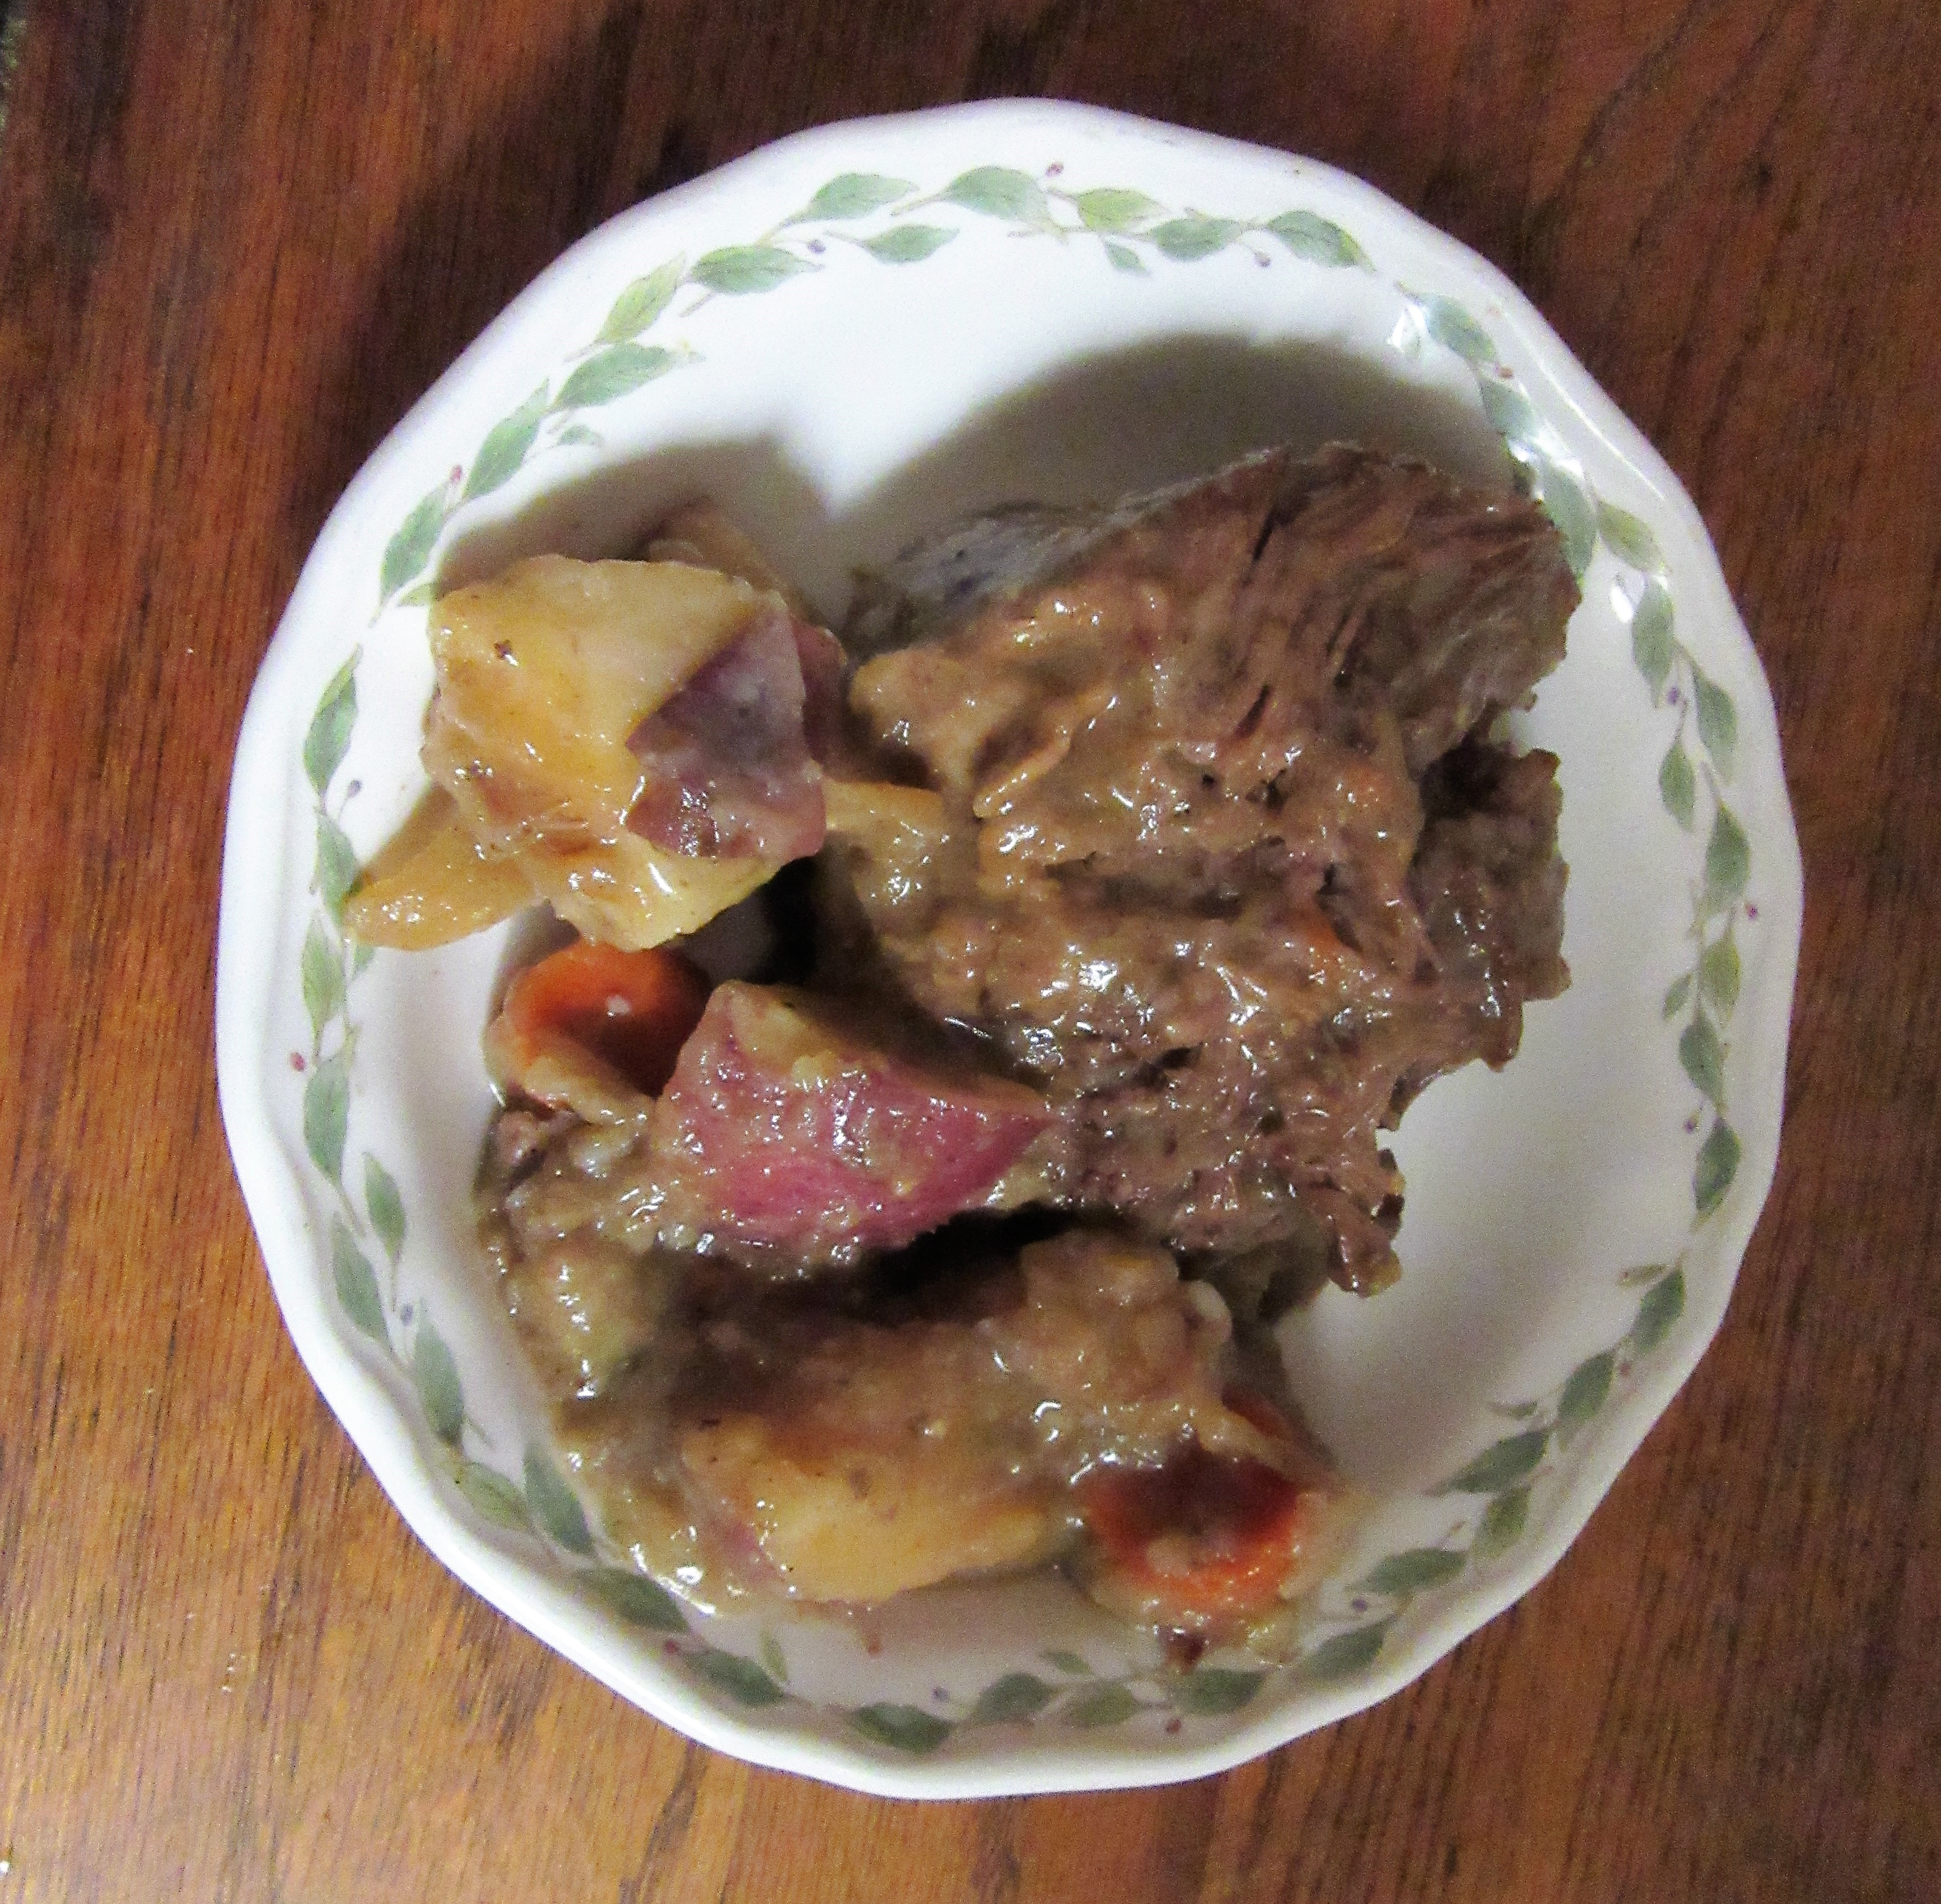 """""""Pot Roast"""" is licensed by Kathy Waller under CC BY-NC-SA 2.0."""